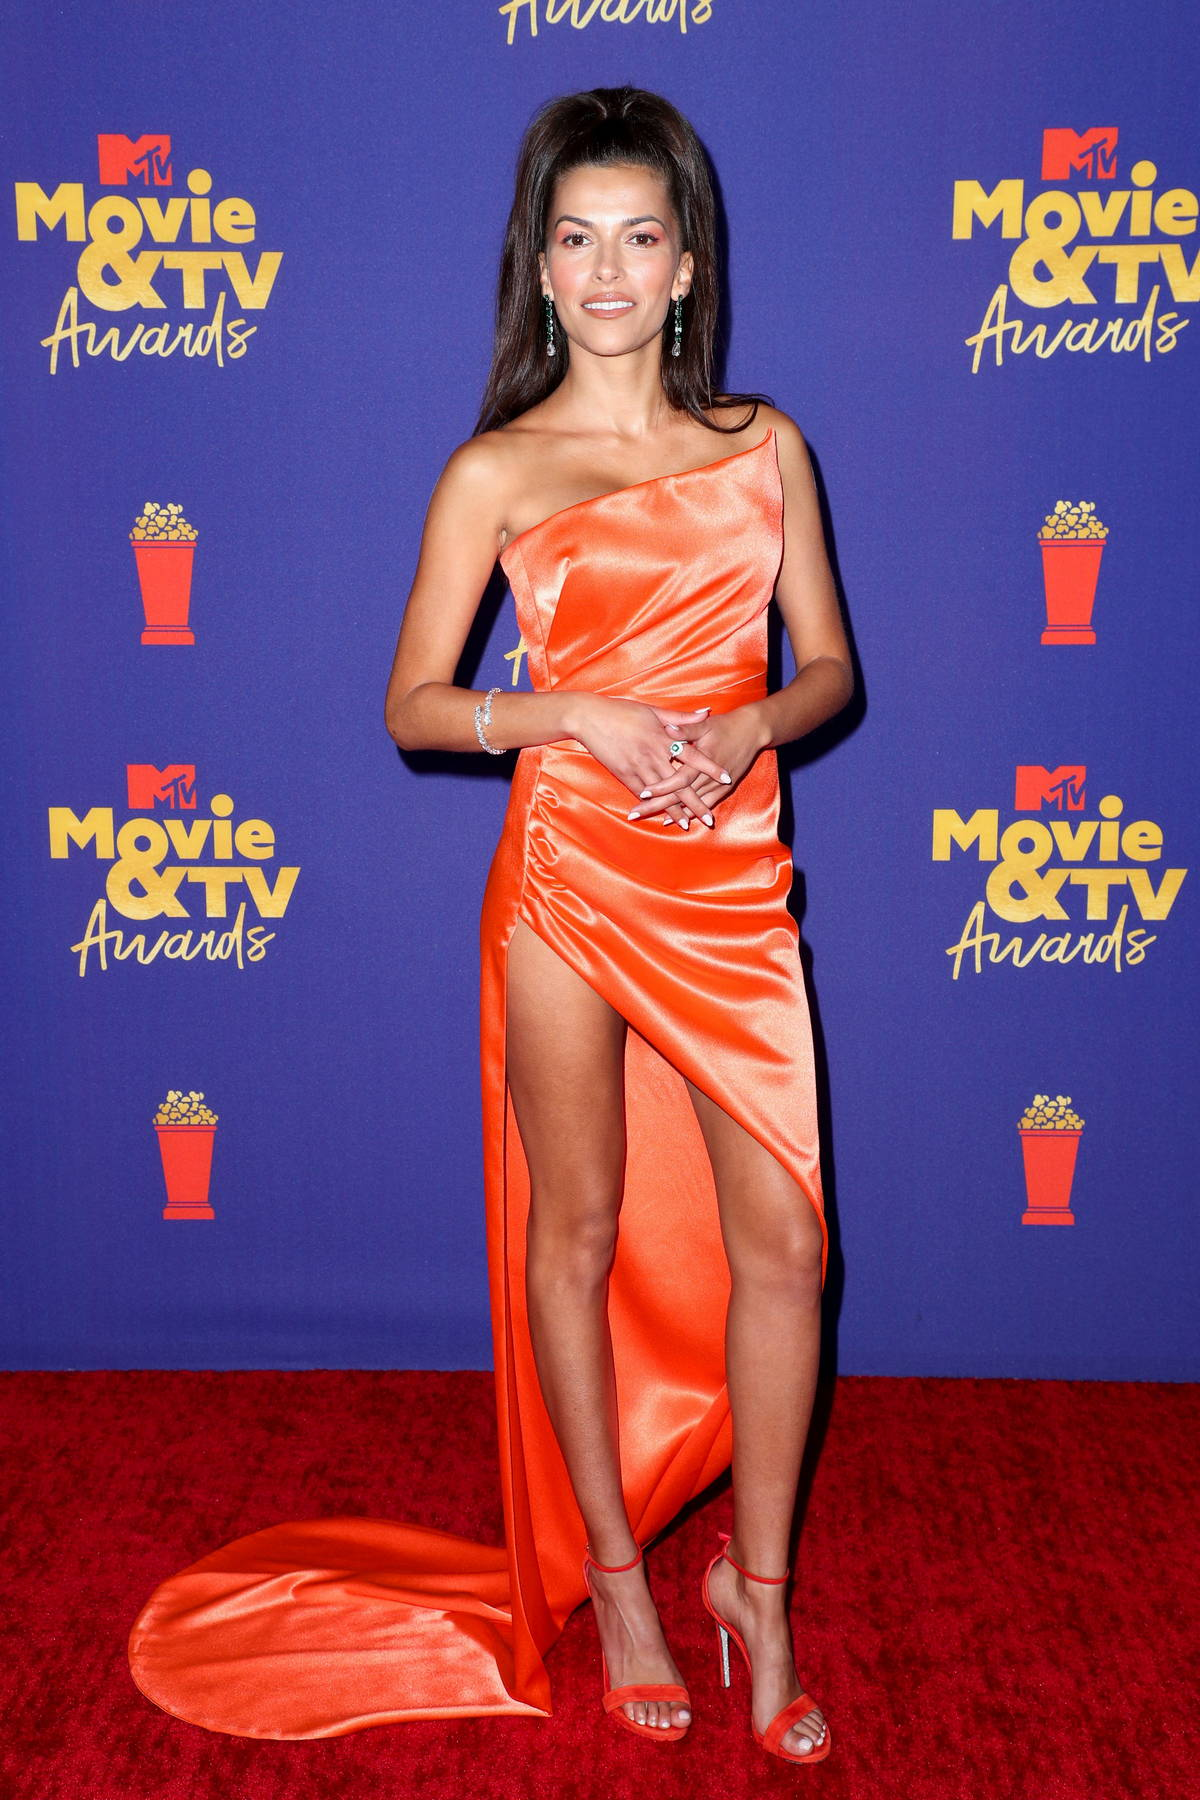 Sofia Pernas attends the 2021 MTV Movie & TV Awards at the Hollywood Palladium in Los Angeles